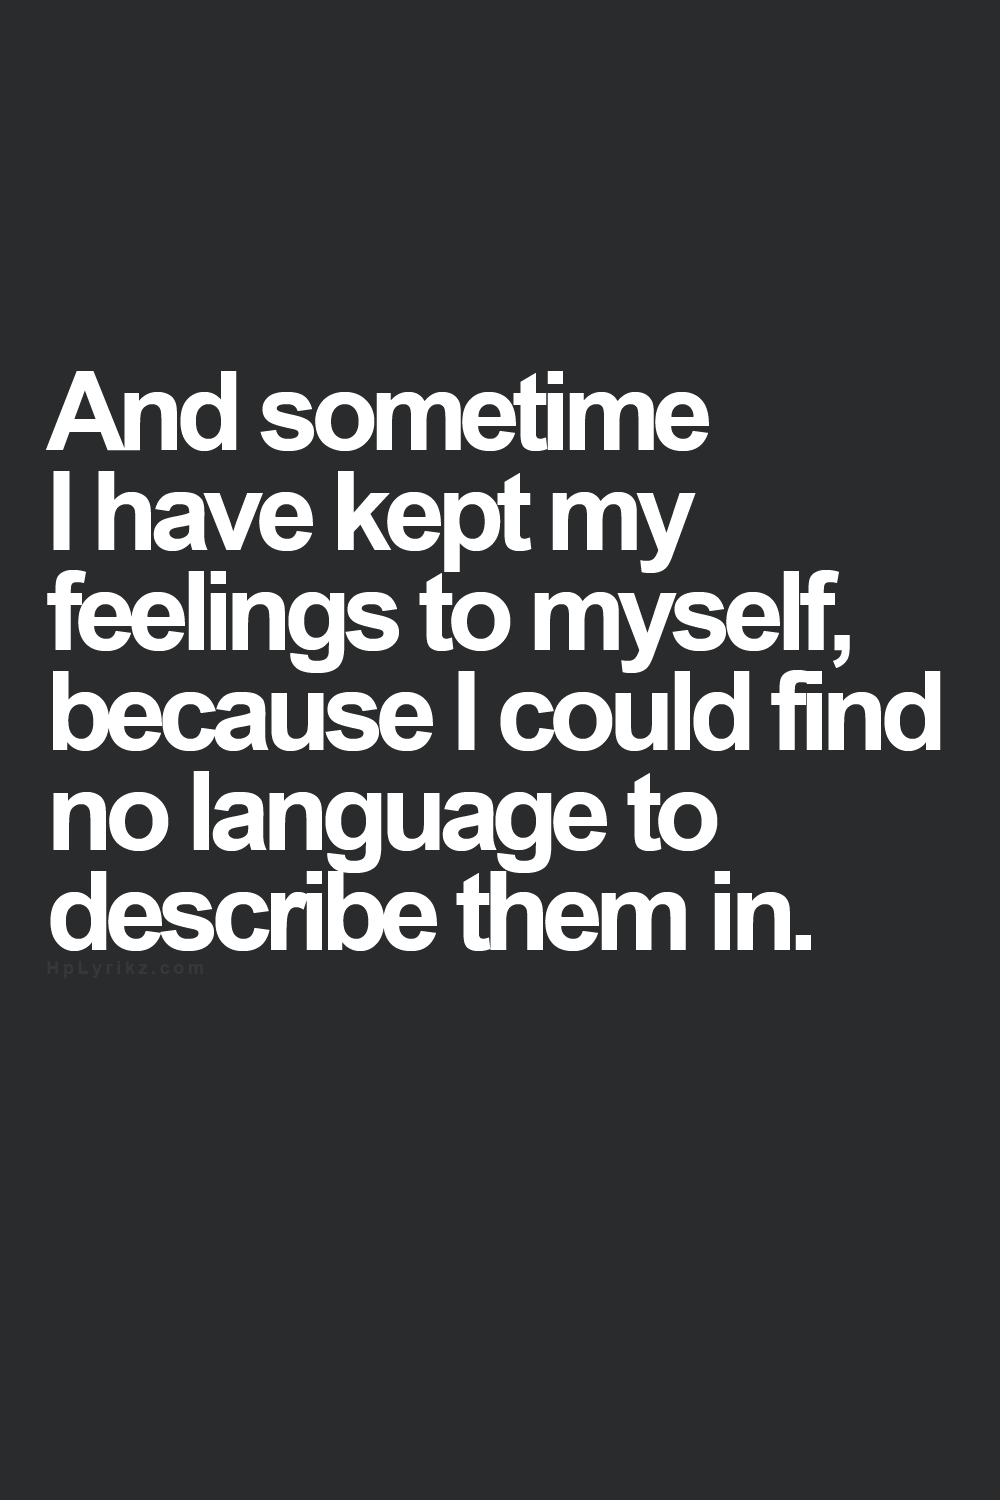 And sometime I have kept my feelings to myself, because I could find no language to describe them in.